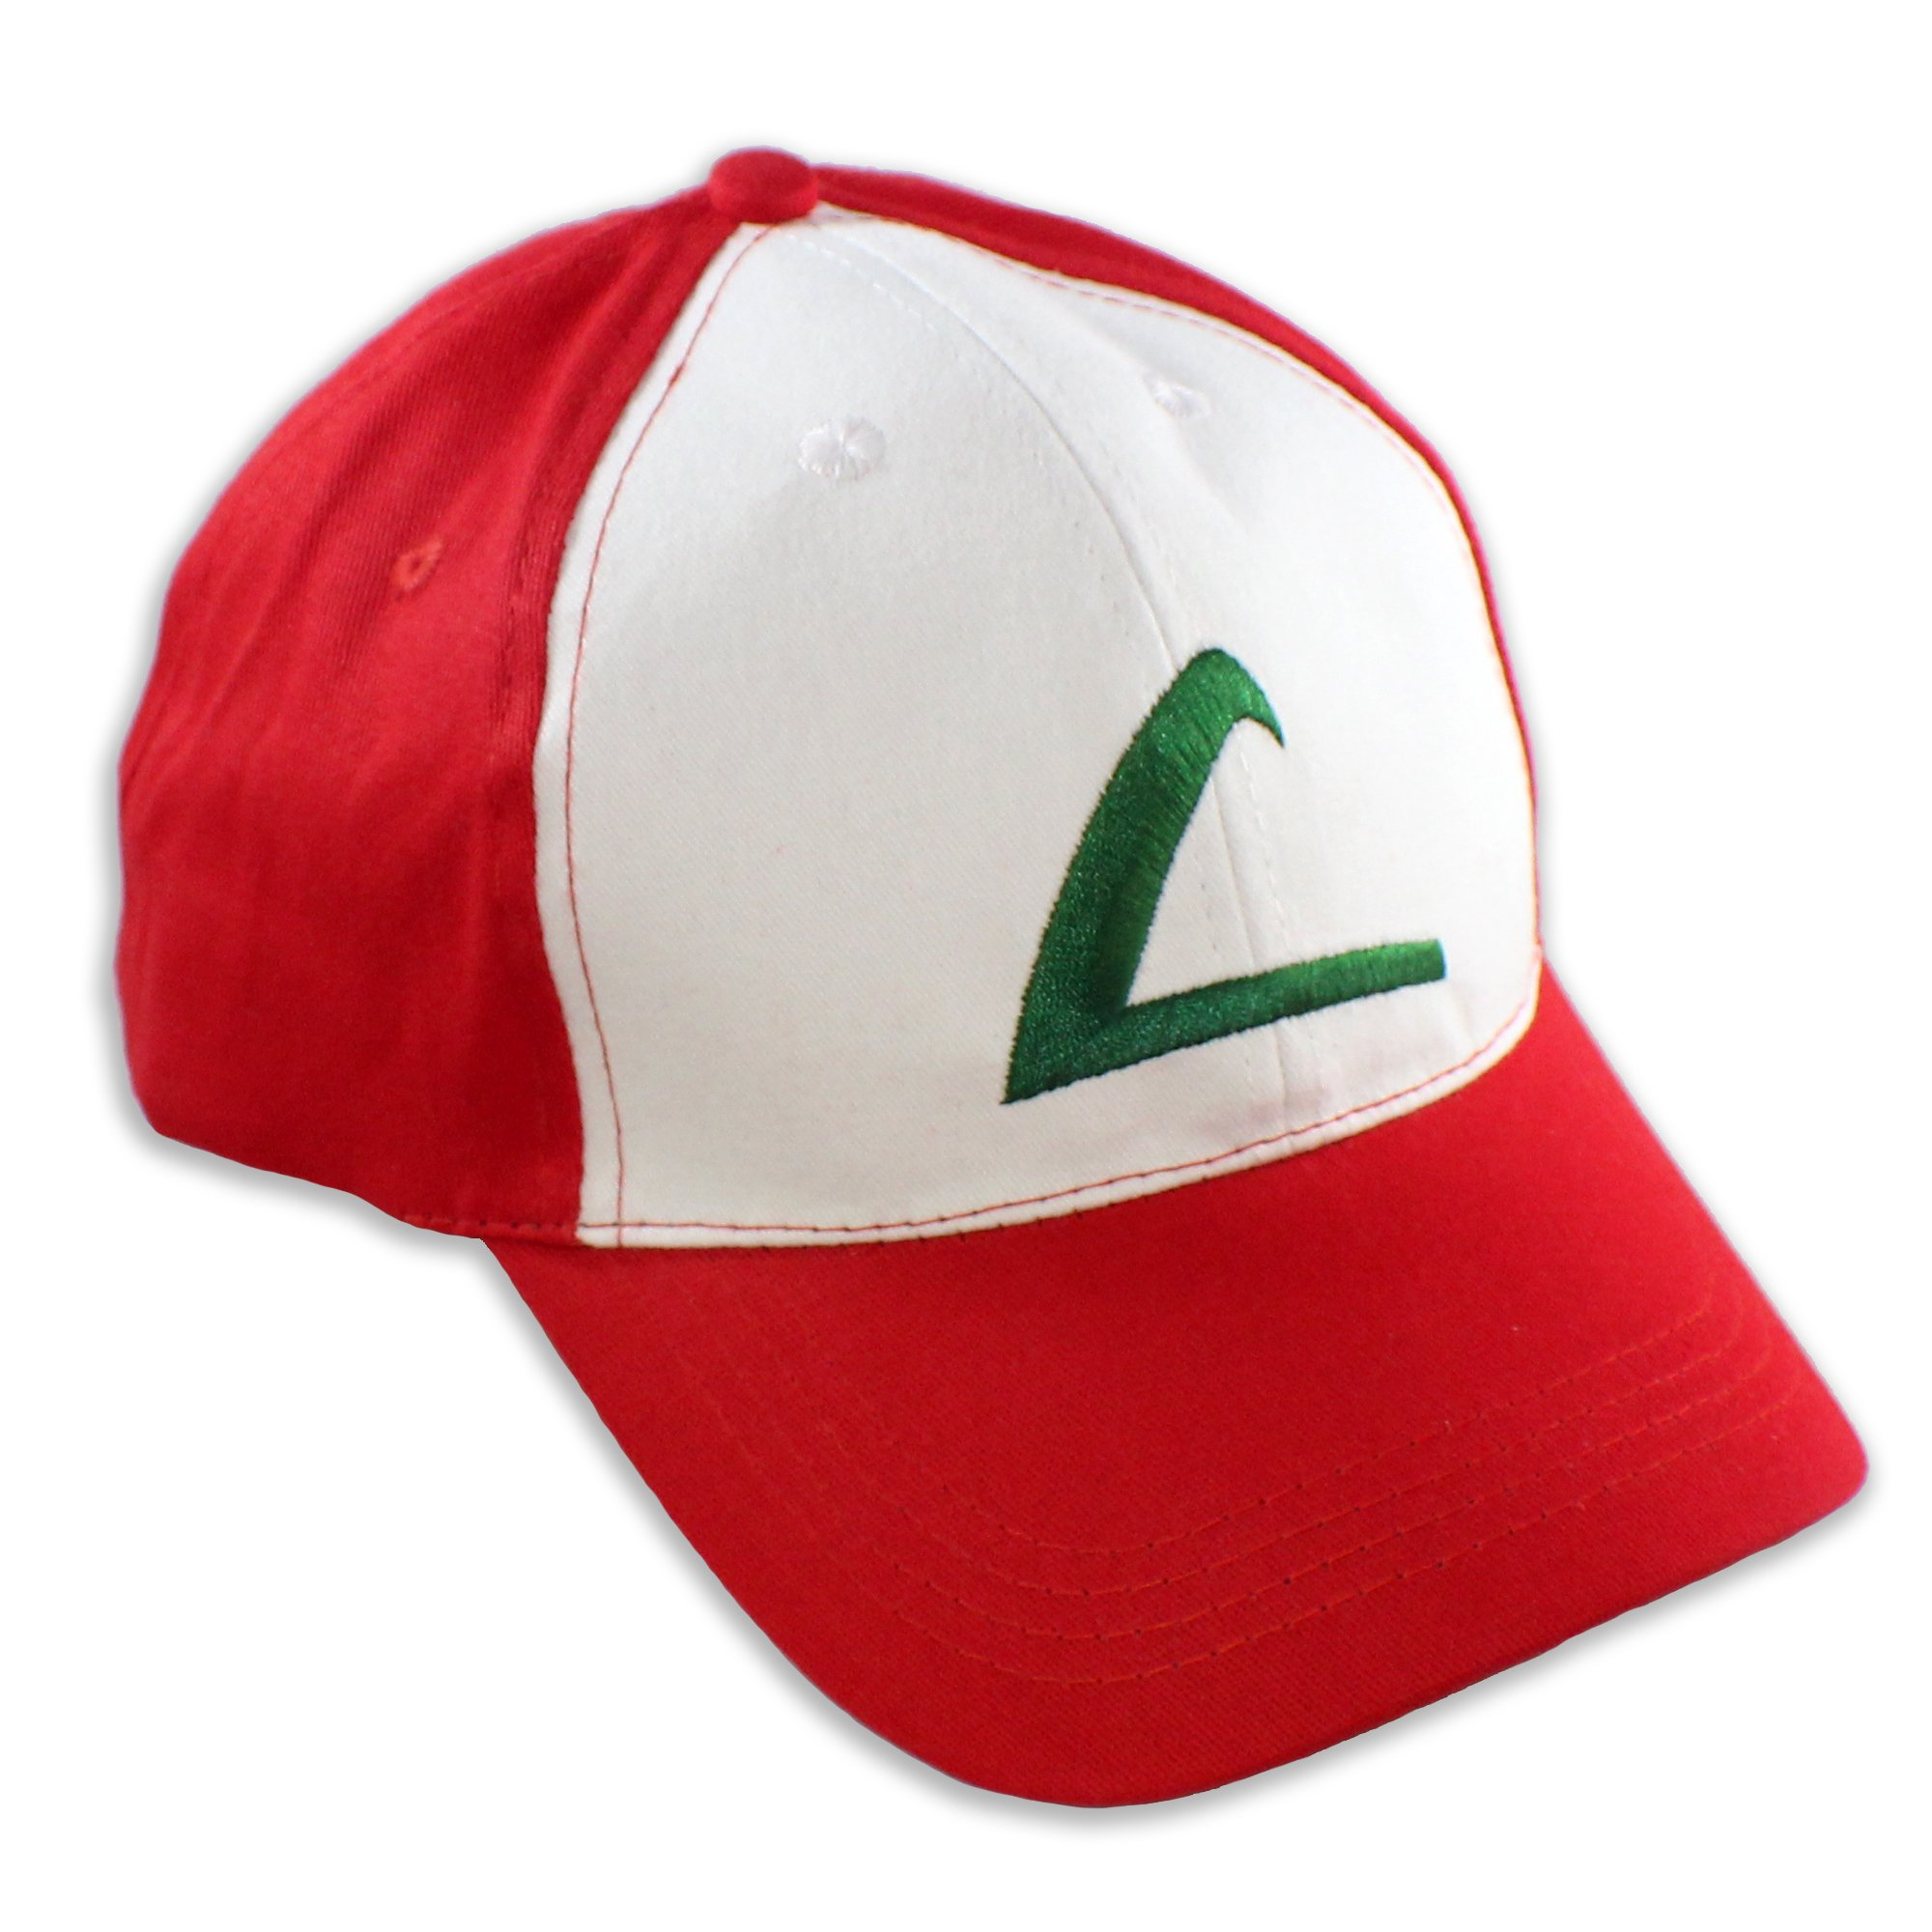 PLAYOLY Ash Ketchum Party Cosplay Trainer Hat - Cool Baseball Cap Accessory - Unisex One Size Fits Most Adjustable Snapback with Embroidered Stitching by PLAYOLY